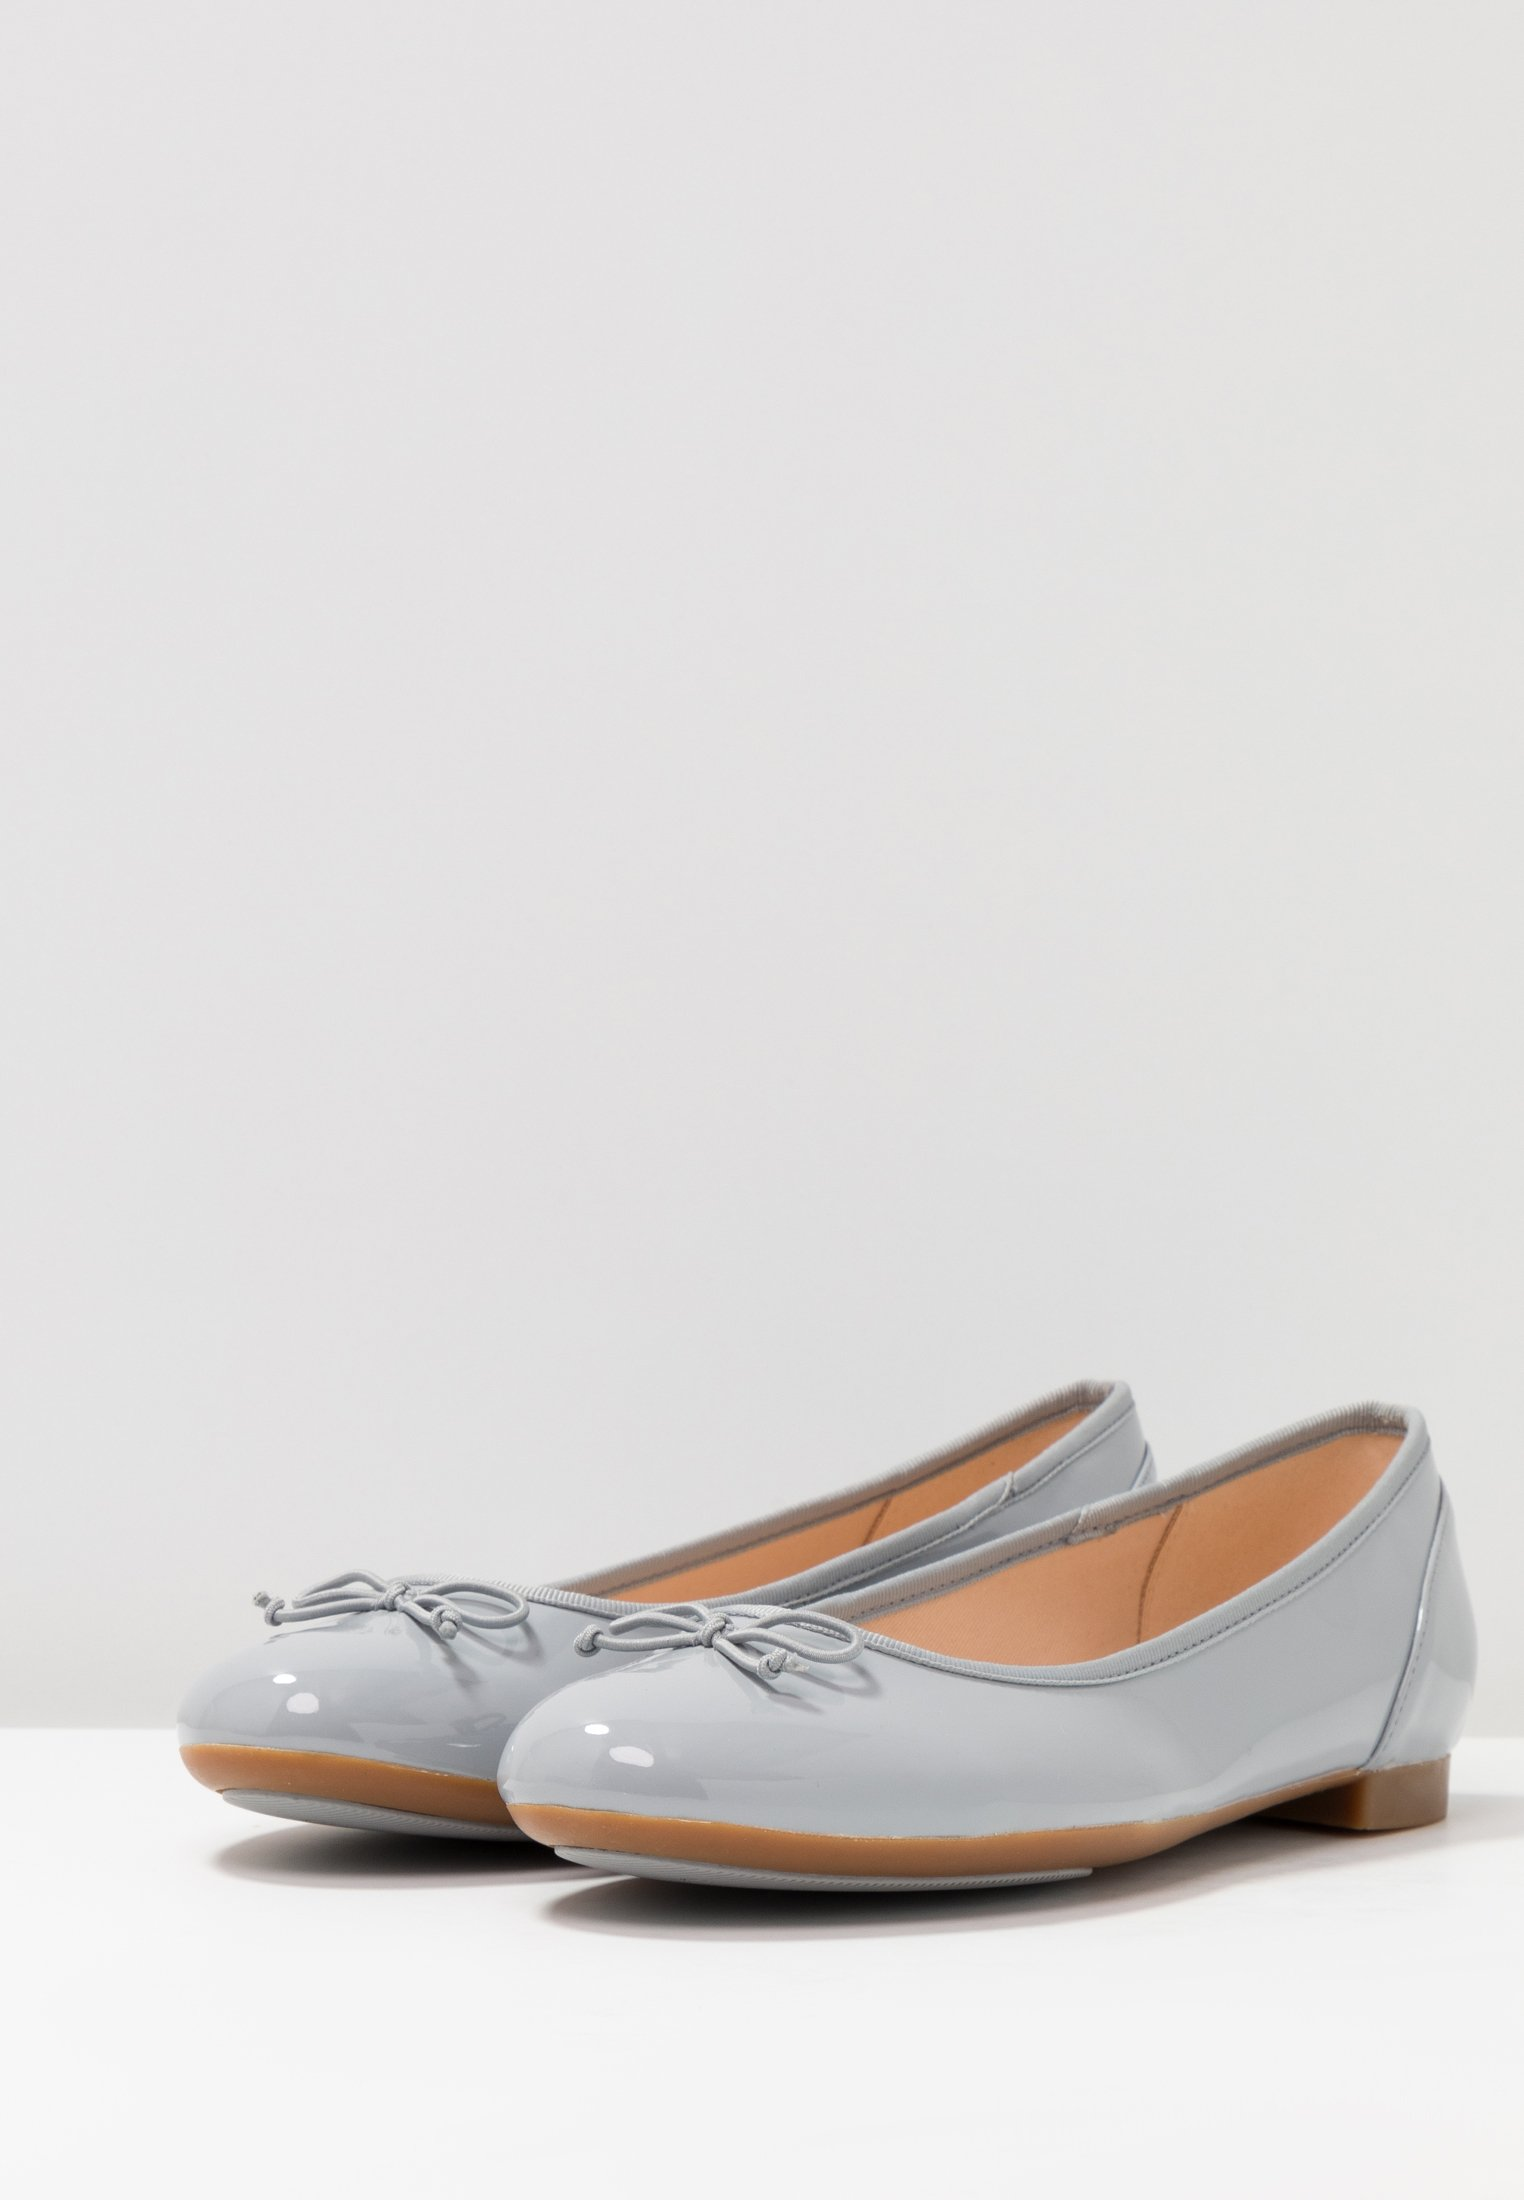 Grey BloomBallerines Couture Clarks Clarks blue uTFJ31lKc